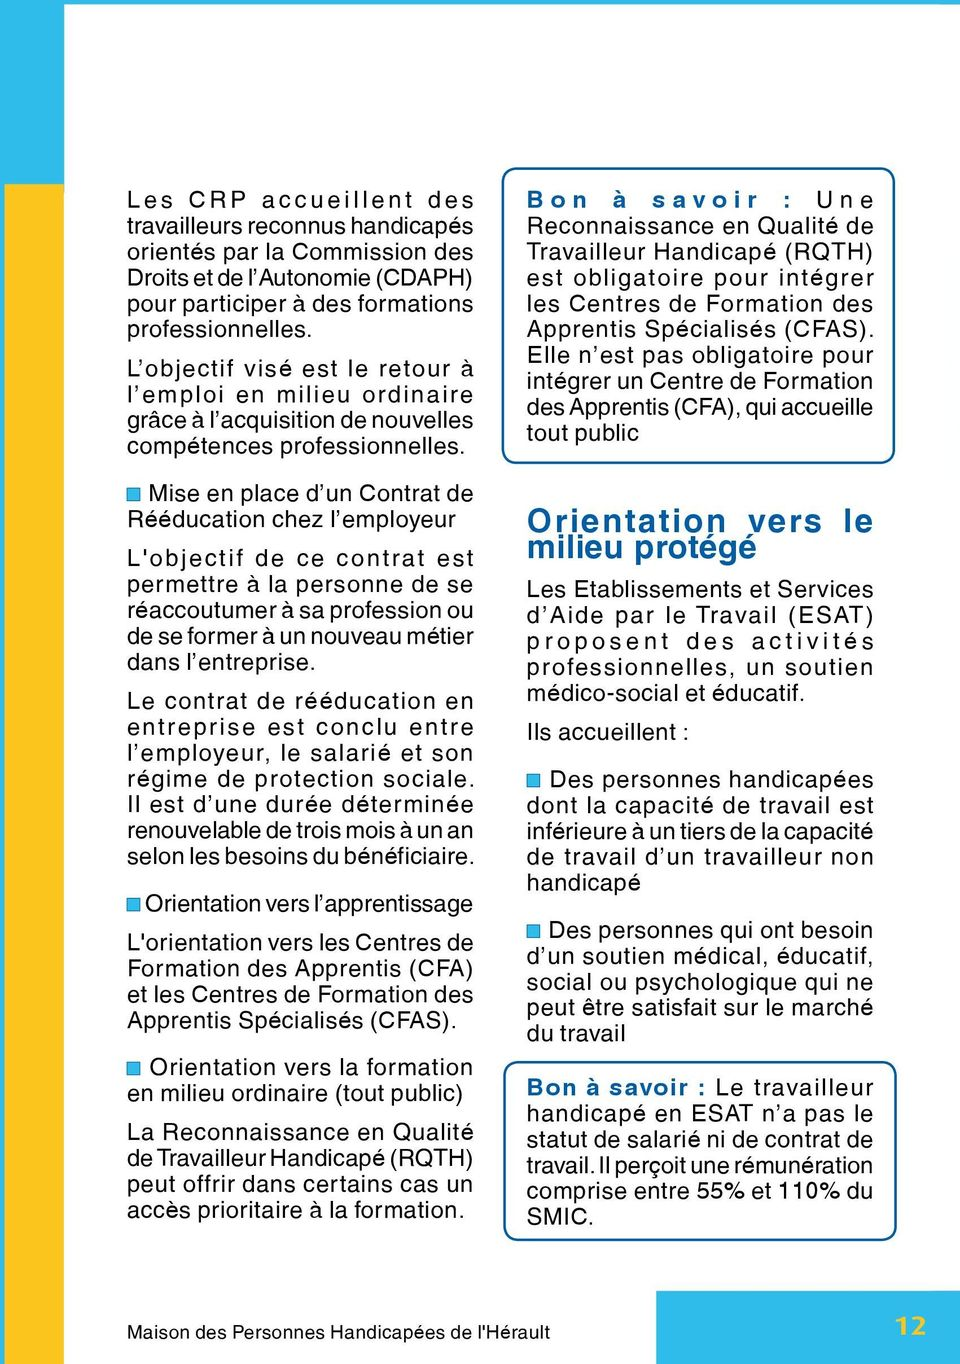 guide  d orientation  pour l insertion professionnelle des